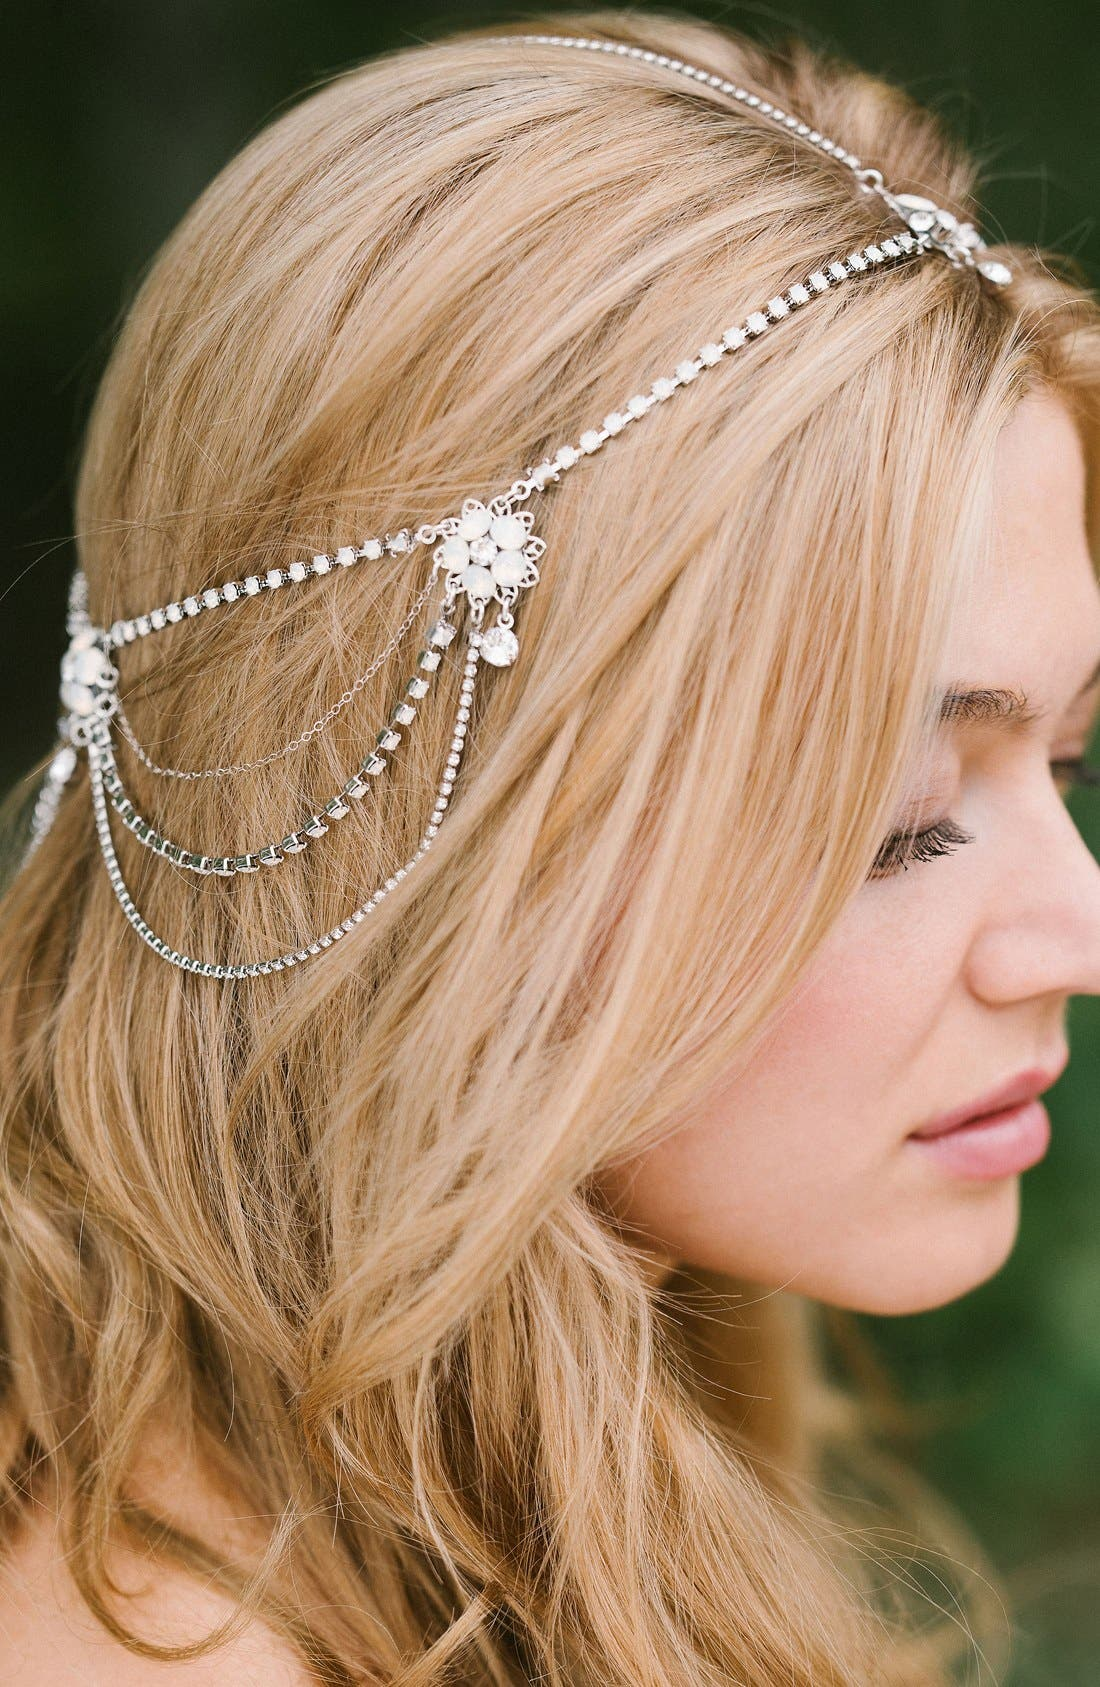 'Madeline' Floral Crystal Hair Chain,                         Main,                         color, Crystal/ White Opal